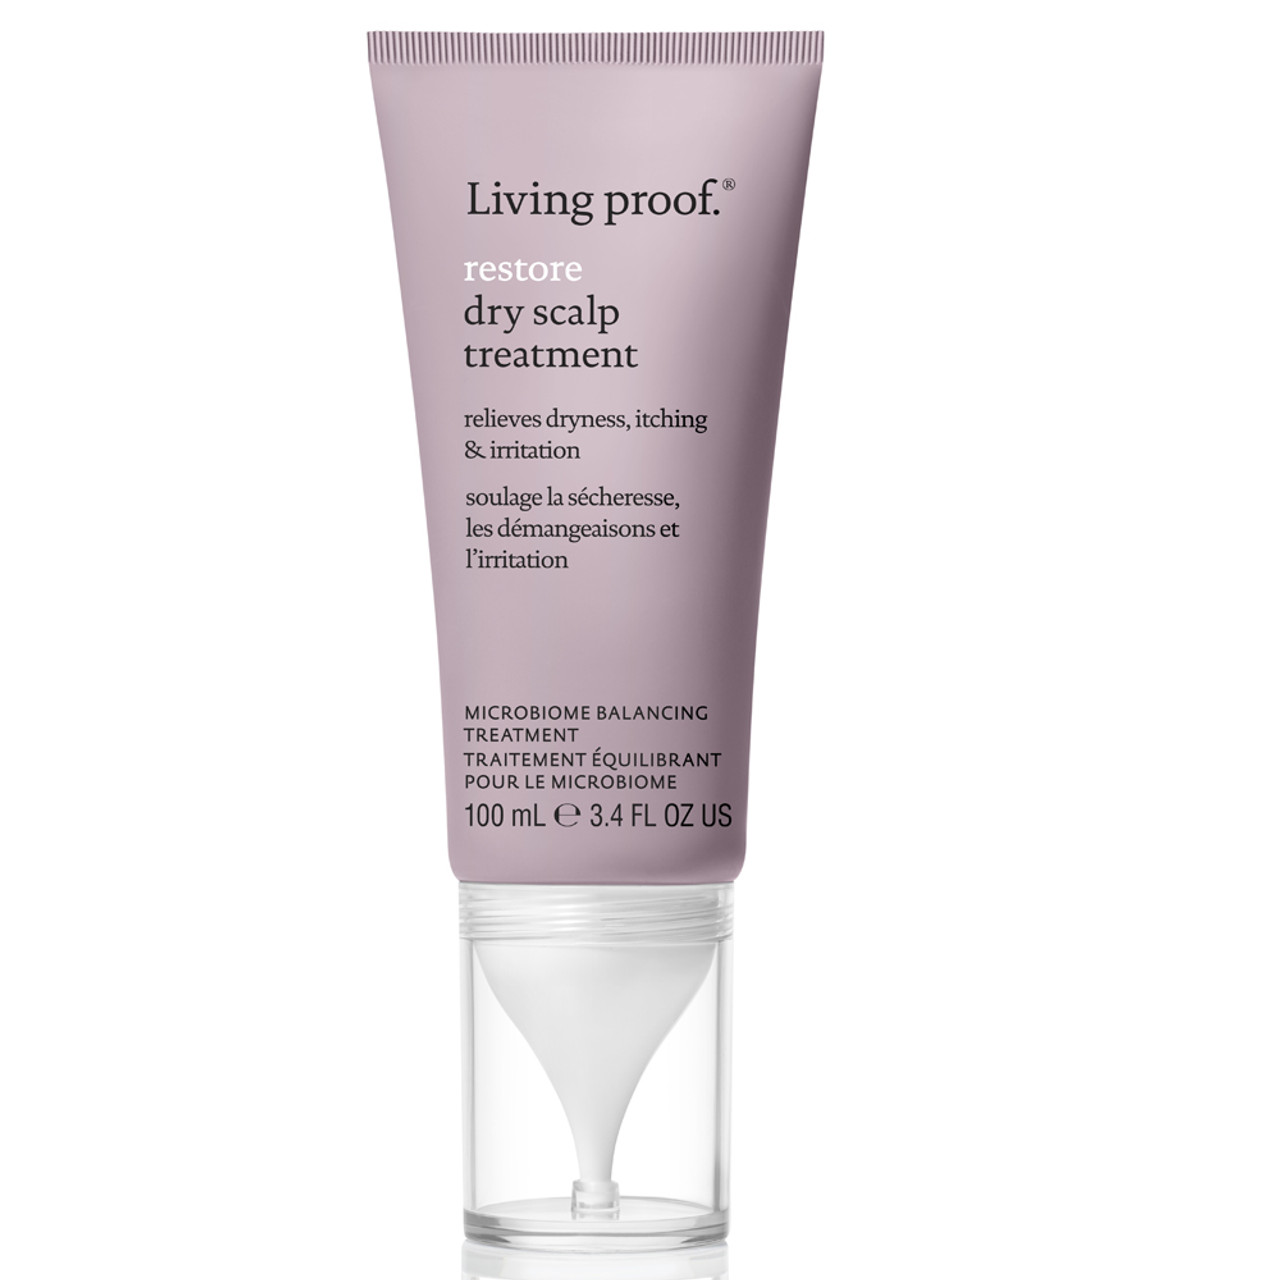 Living Proof Restore Dry Scalp Treatment